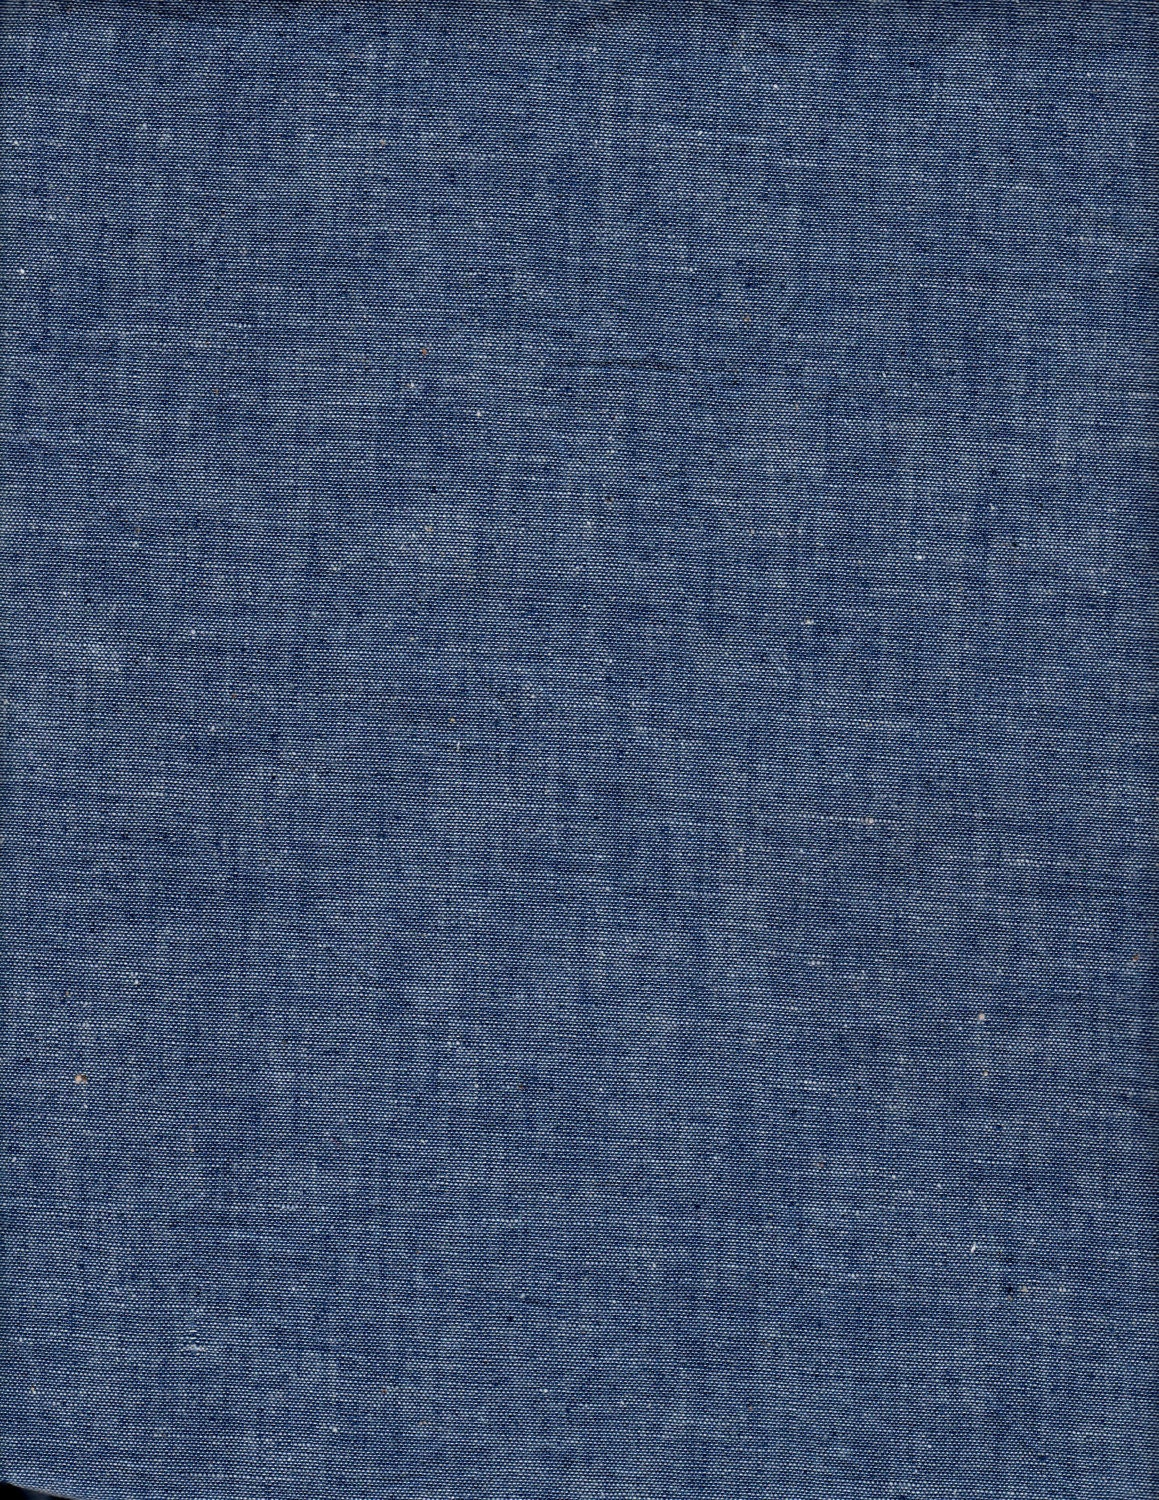 8001 vintage chambray cotton fabric 51 4 yards by woolencrow for Chambray fabric